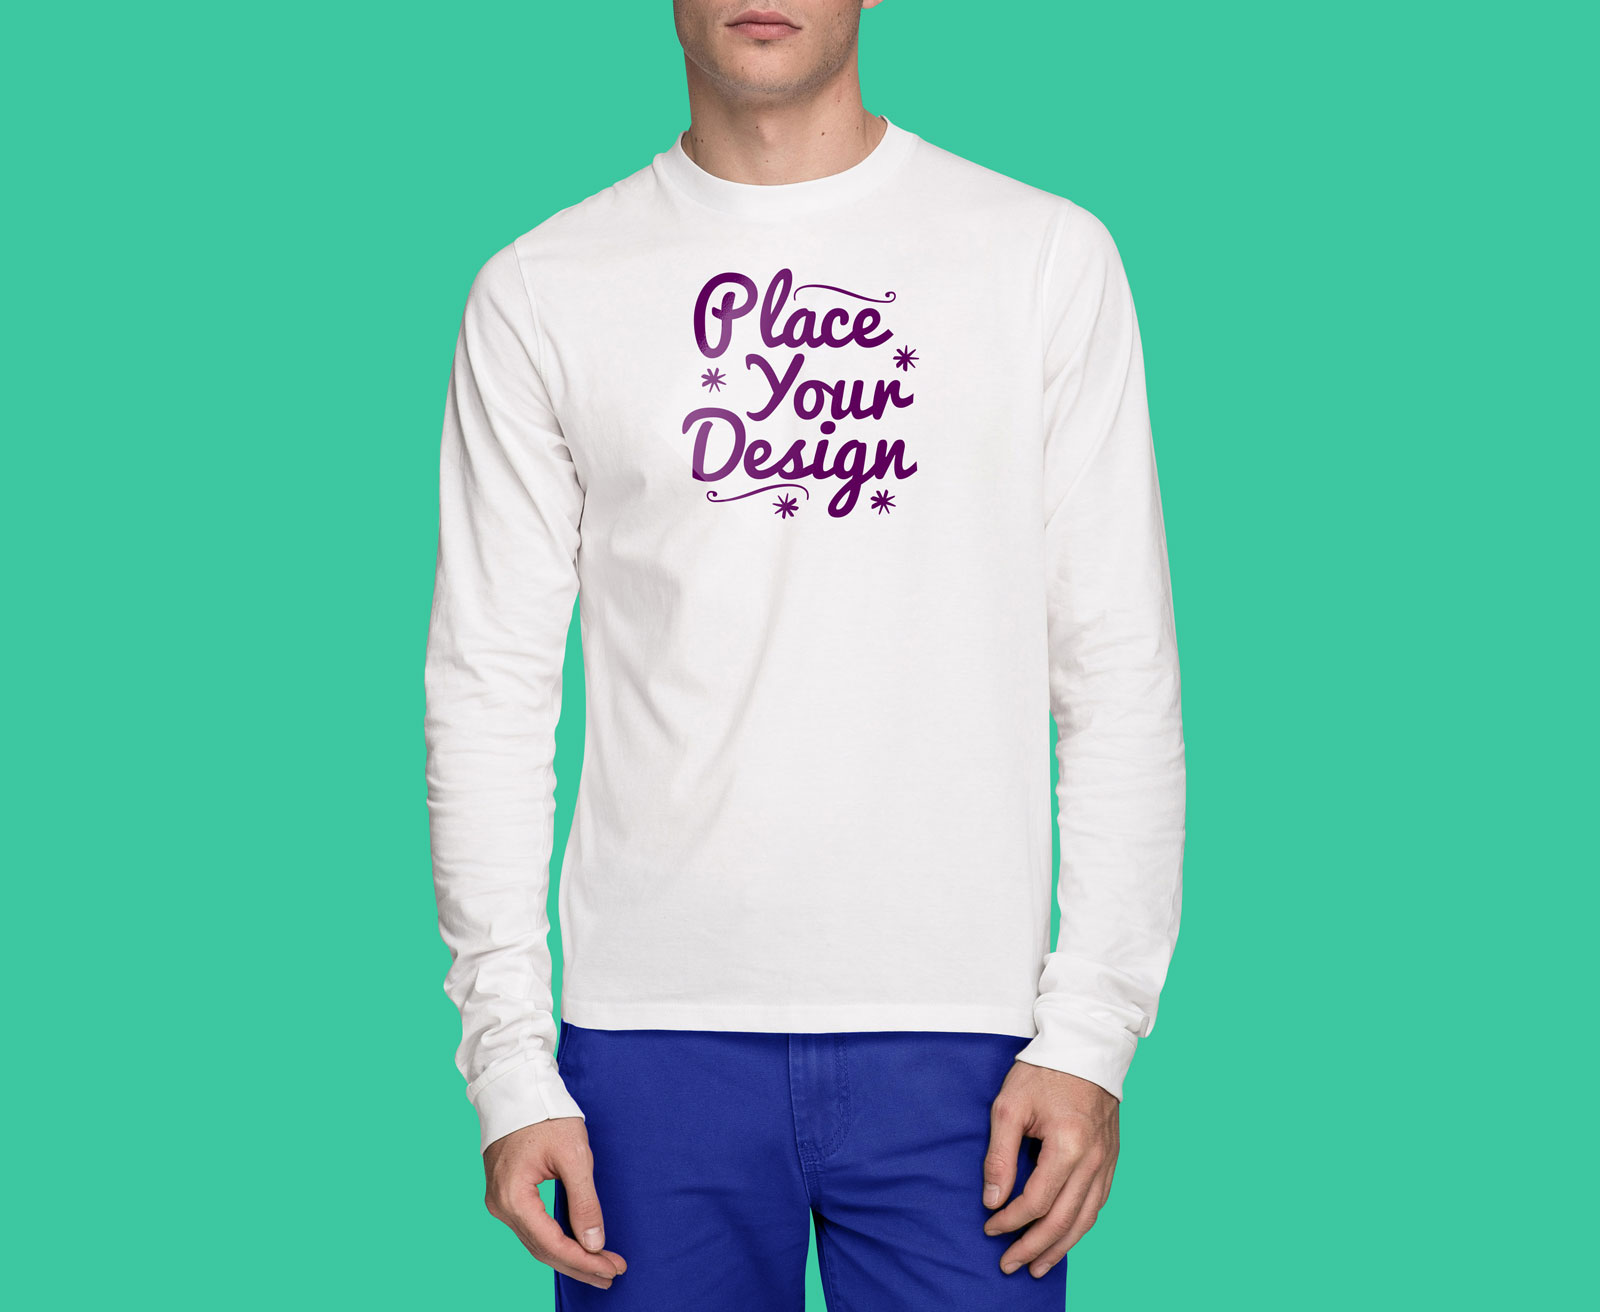 Free-Frontside-White-Long-Sleeves-T-Shirt-Mockup-PSD